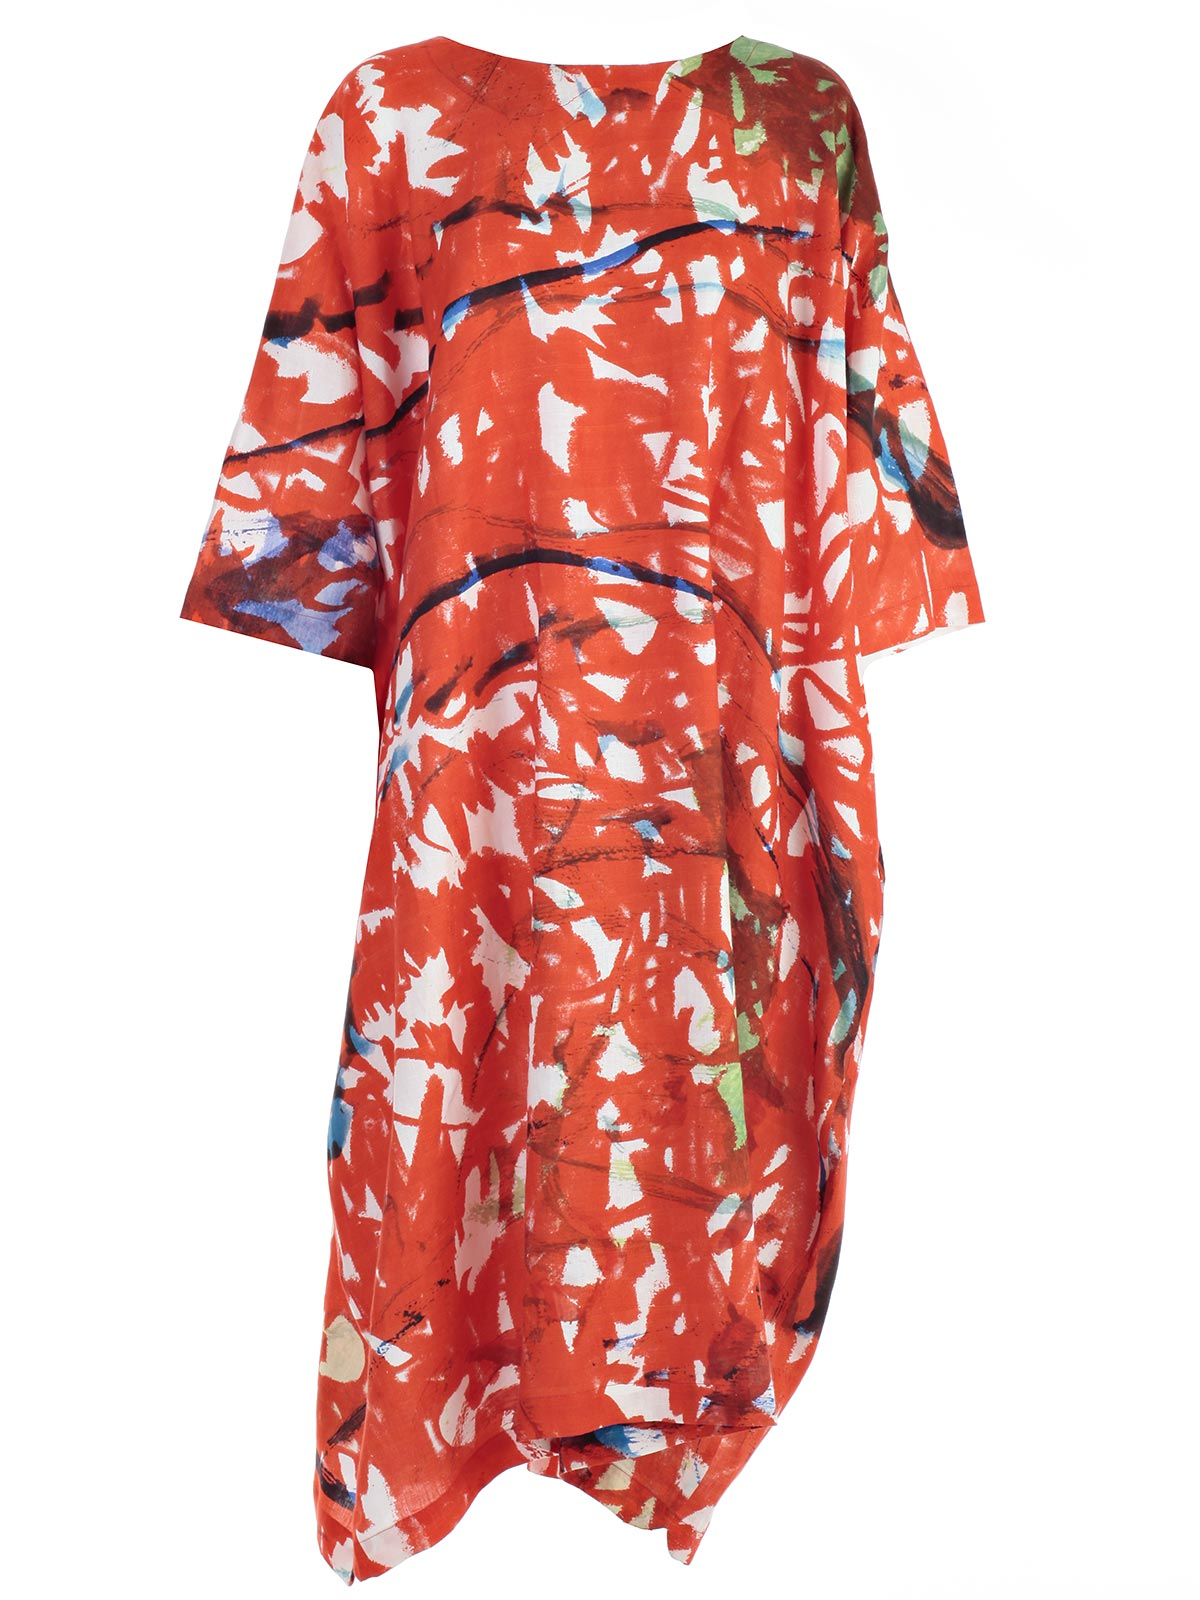 Picture of DANIELA GREGIS DRESS 3/4 SLEEVE PRINTED DRESS